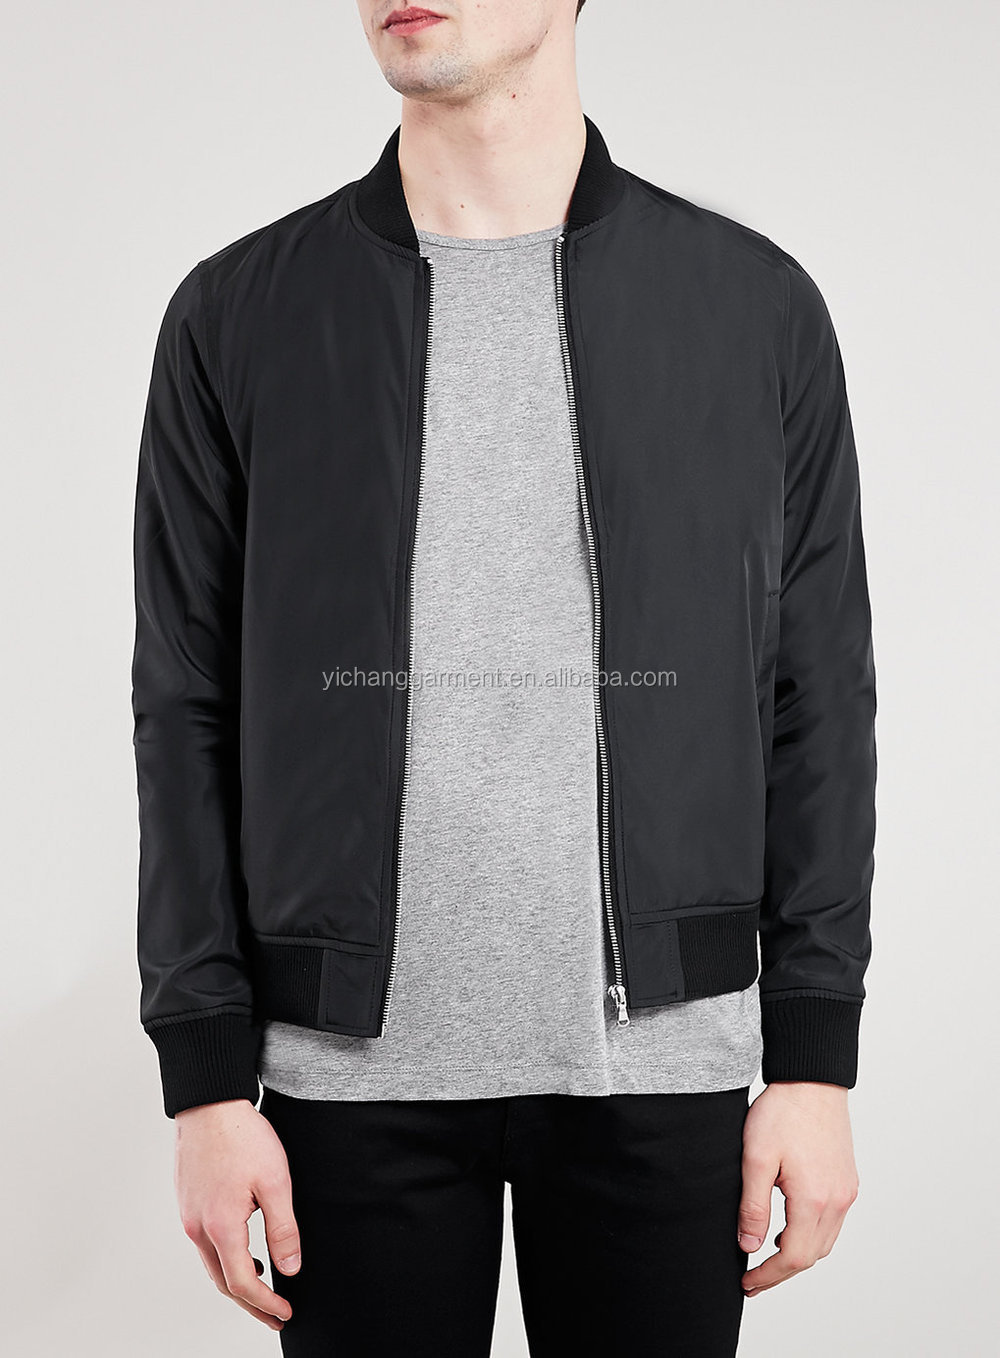 Men Black Slogan Print Bomber Jacket,Short Style - Buy Men Black ...